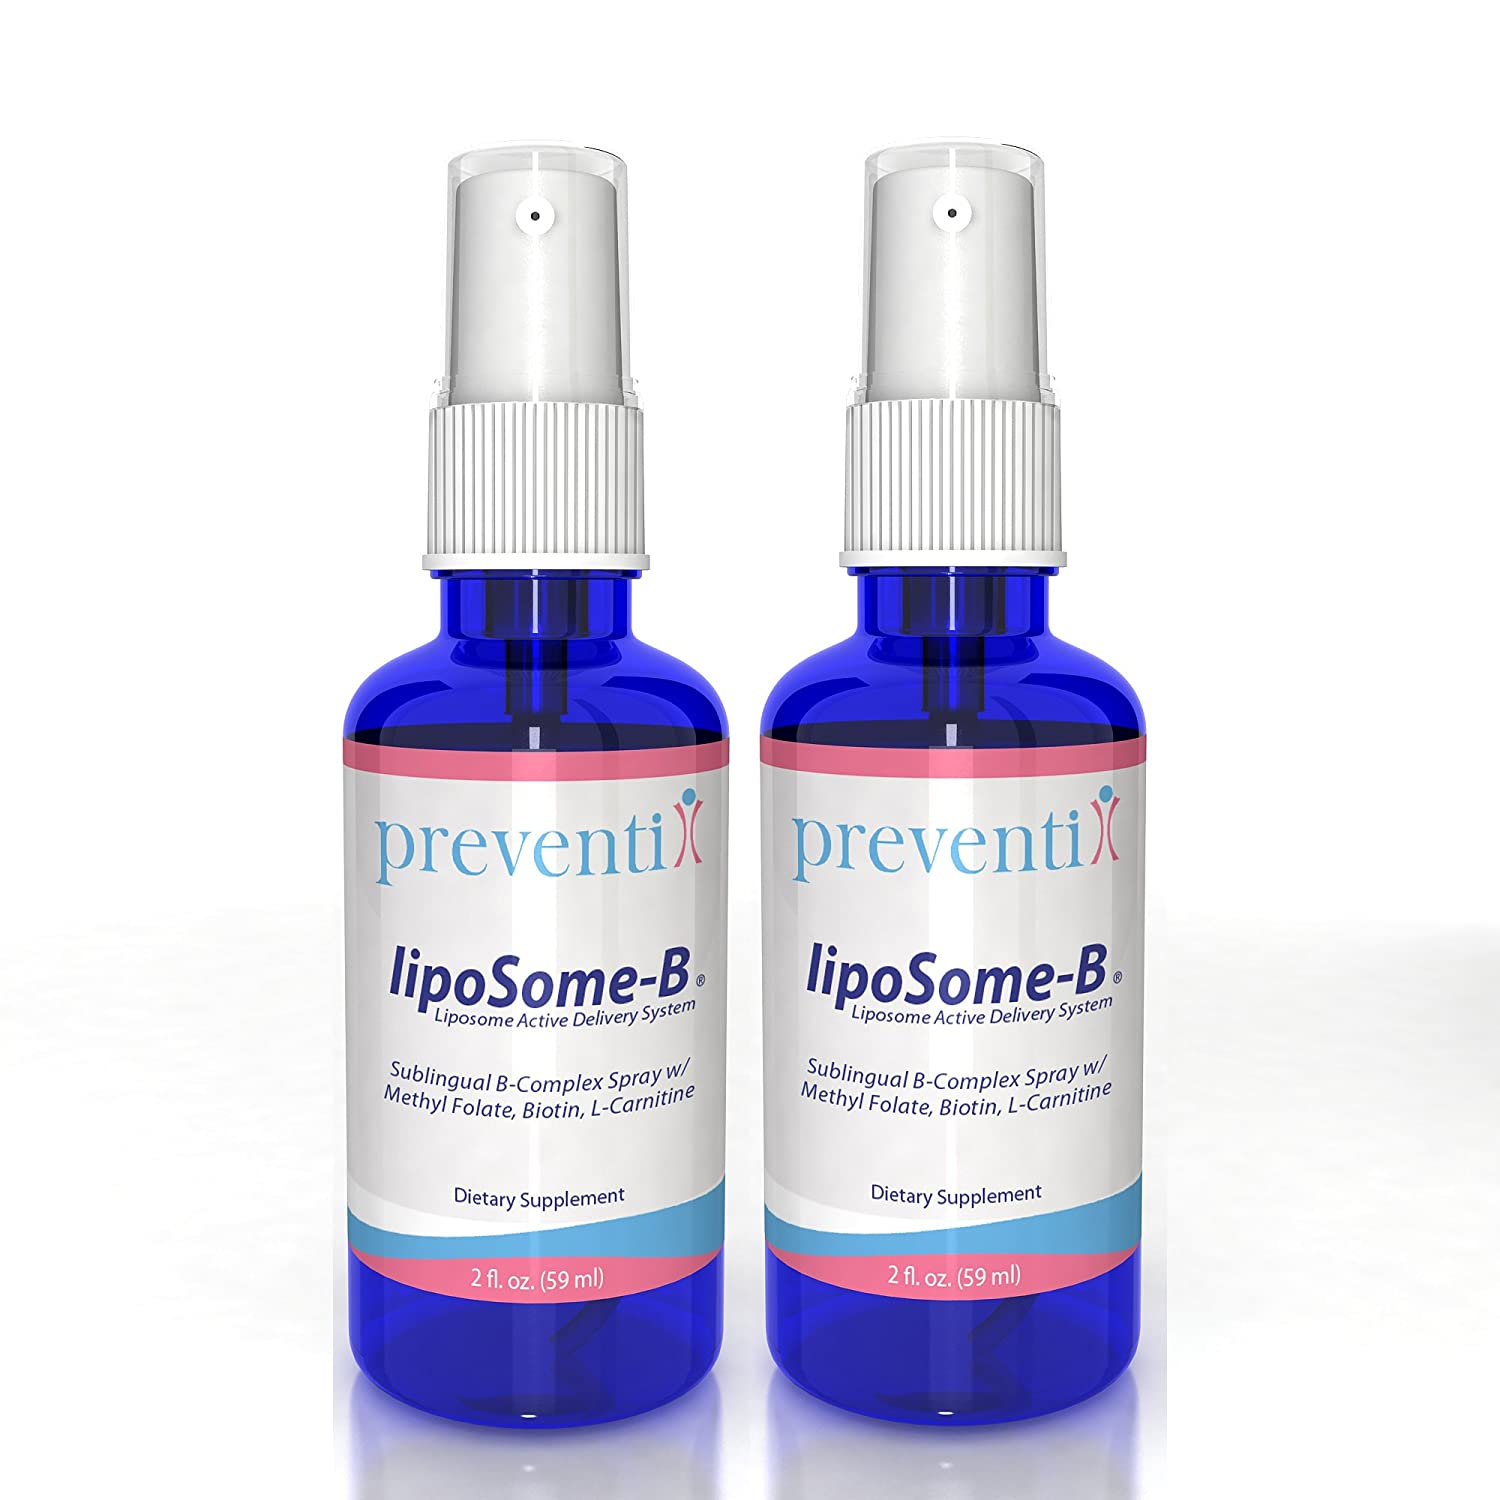 LipoSome B12 Complex Spray_2 Pack Bundle A Superior Liposomal B12 Complex Spray w Methyl Folate, Biotin, L-Carnitine. Advanced liposome Formulation Significantly Increases Absorption bioavailability